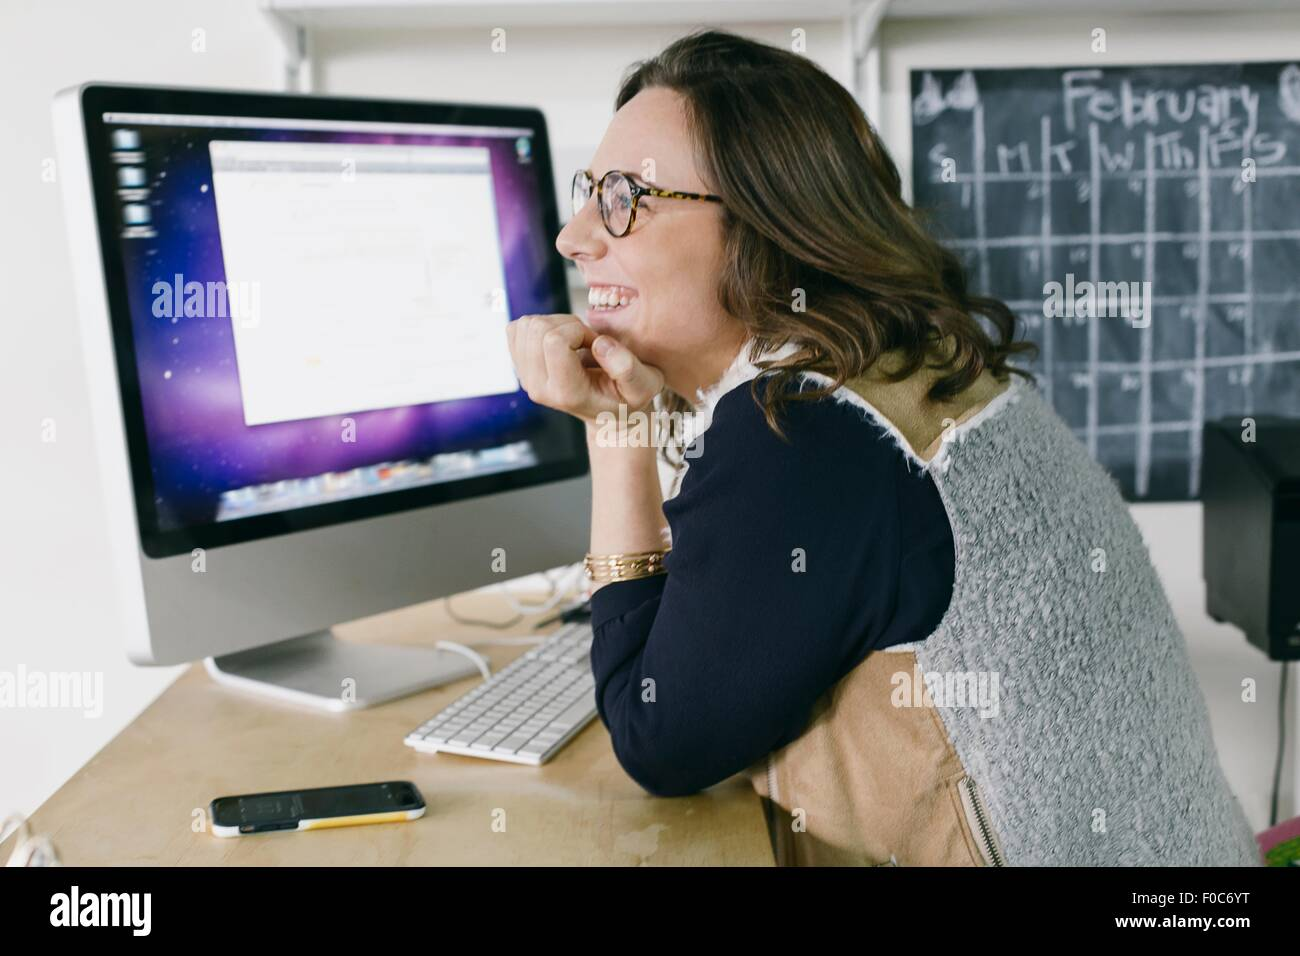 Portrait of young female office worker daydreaming at desk - Stock Image